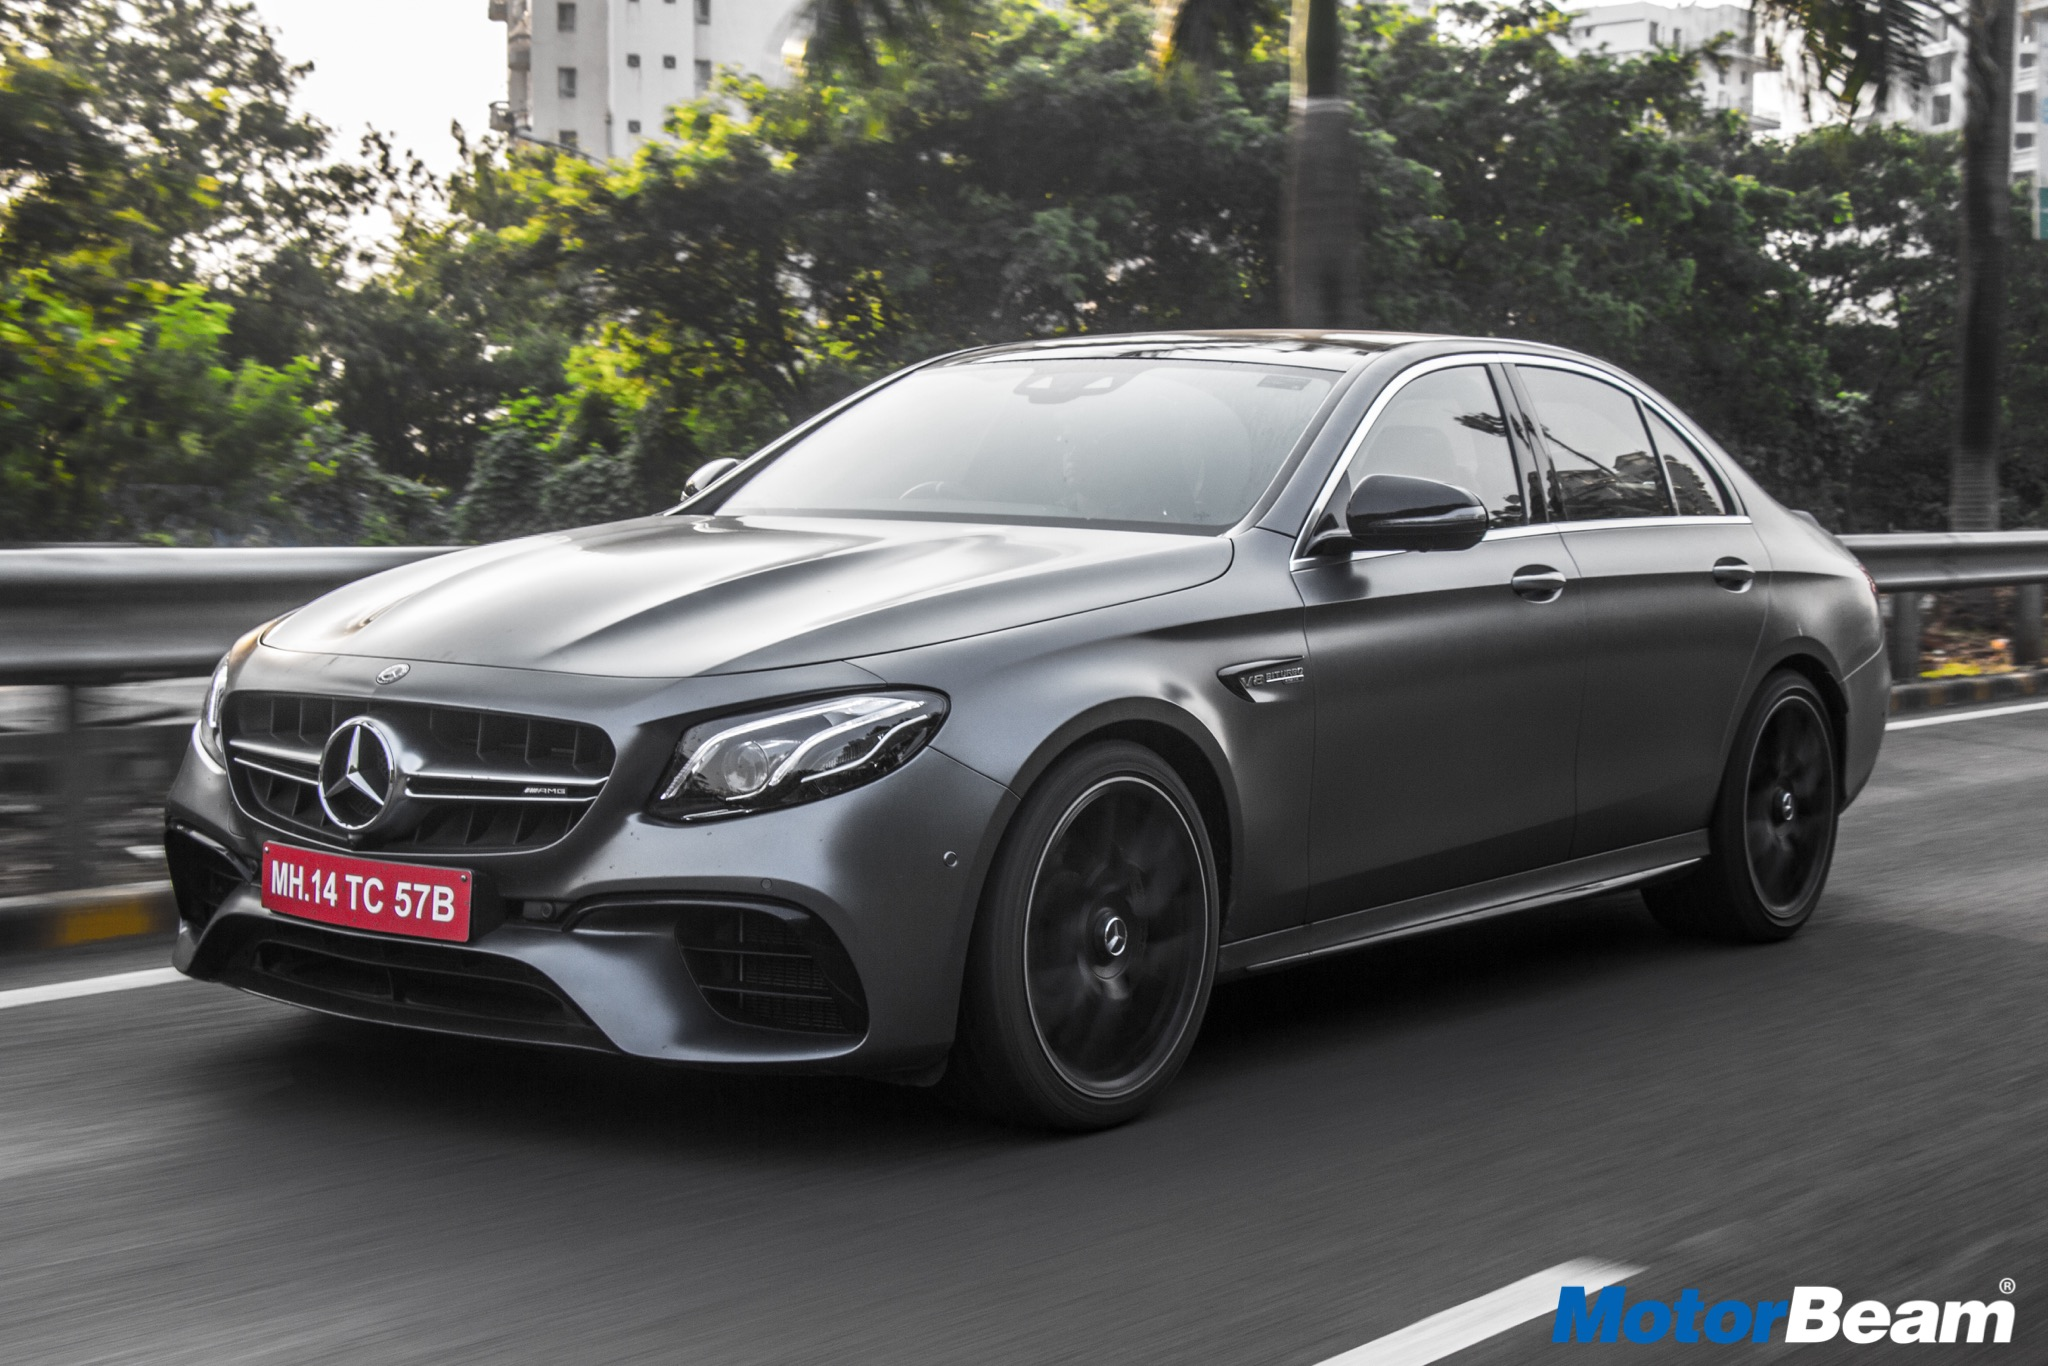 2018 Mercedes-AMG E63s Test Drive Review